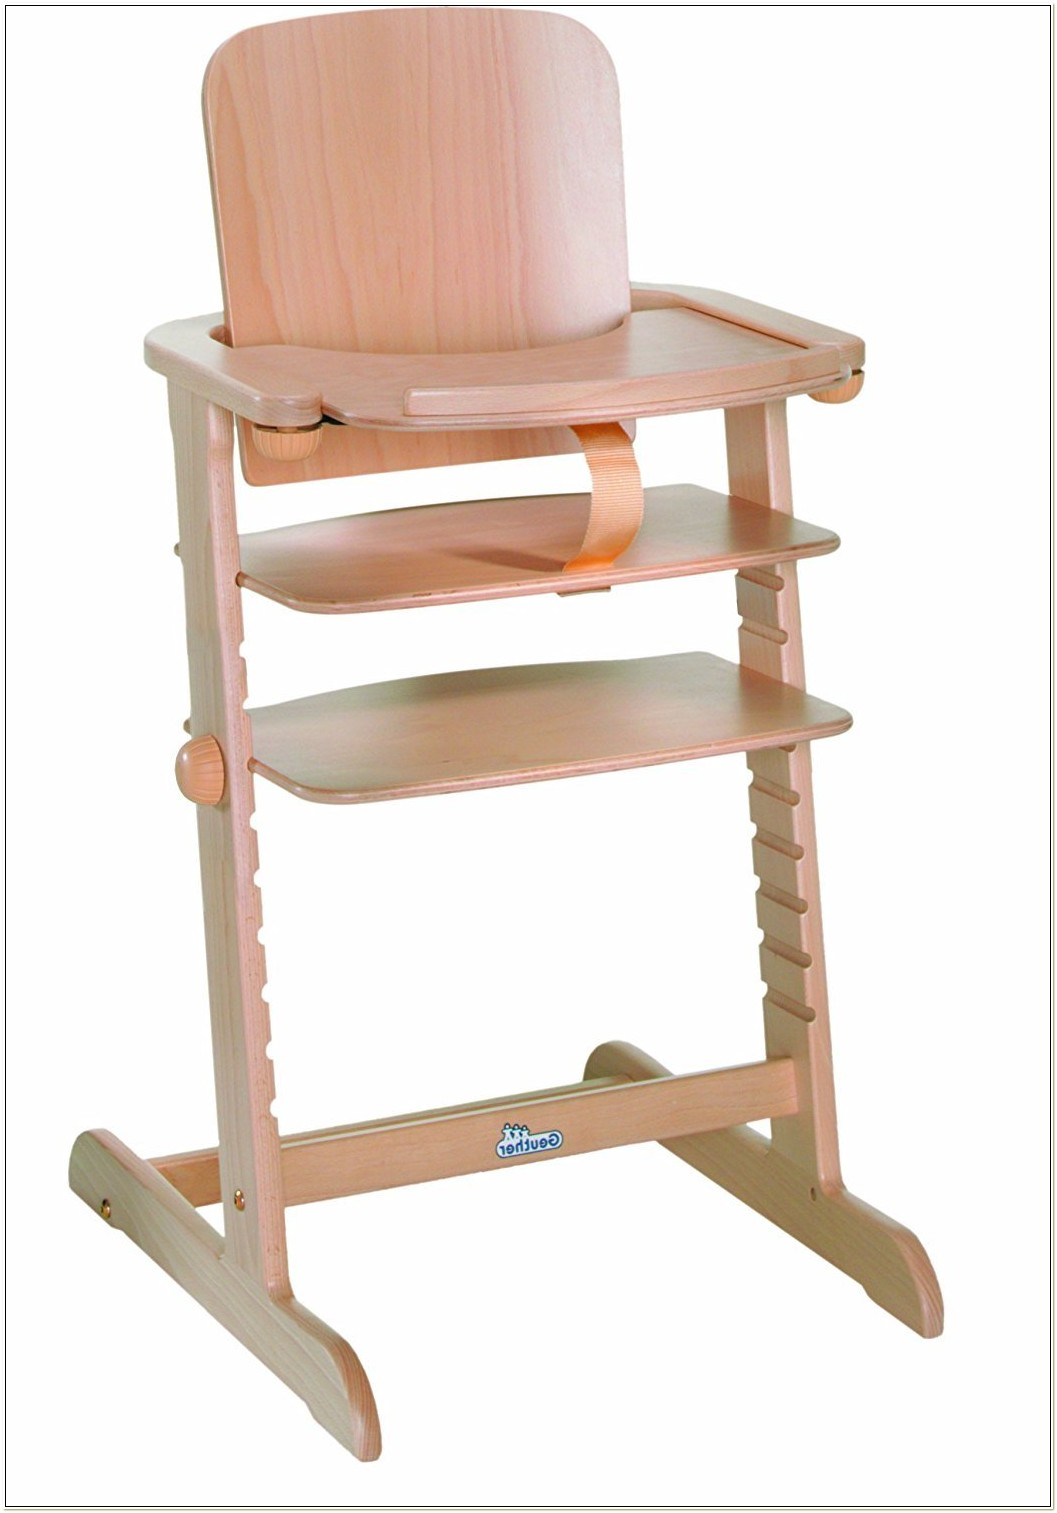 Geuther Family High Chair Instructions